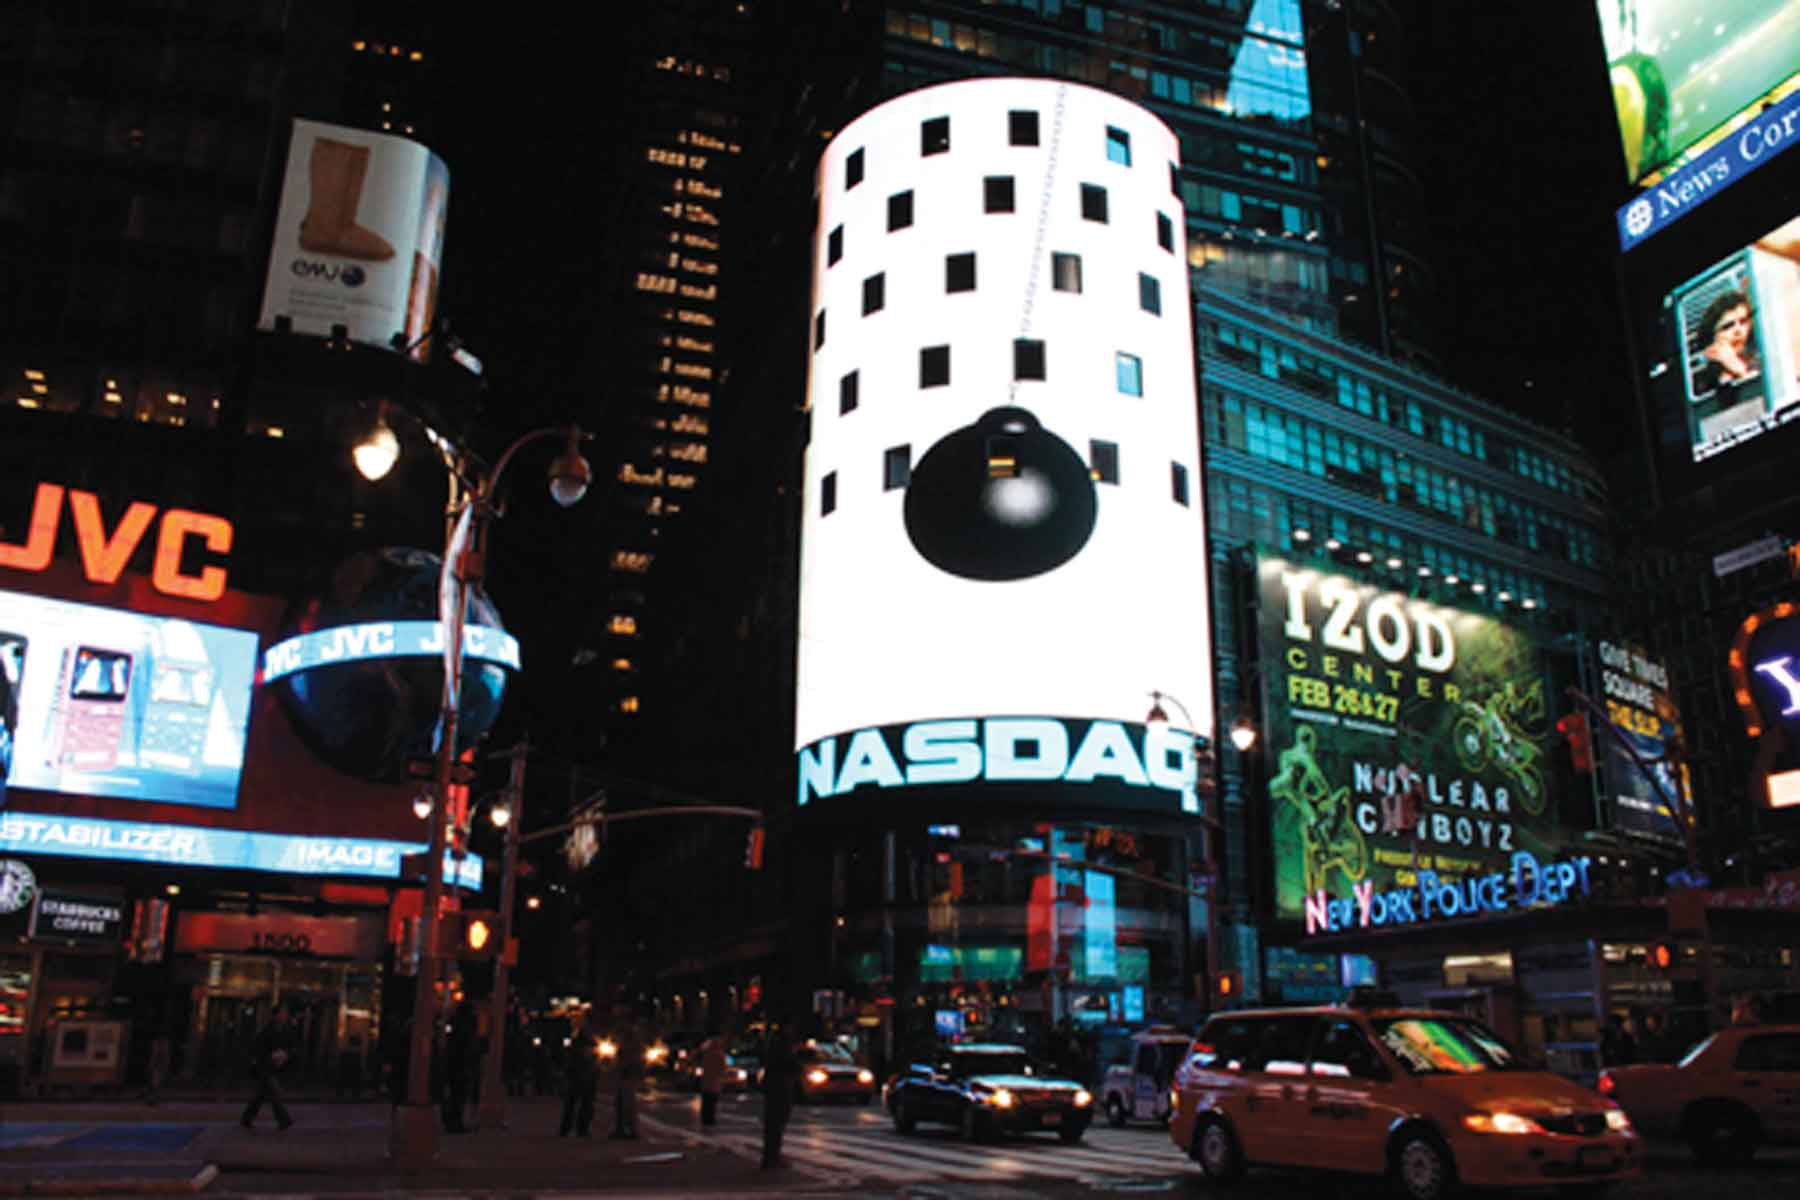 "Black Sun on NASDAQ Billboard, Times Square, 2010, C-Print, 44"" x 66"""